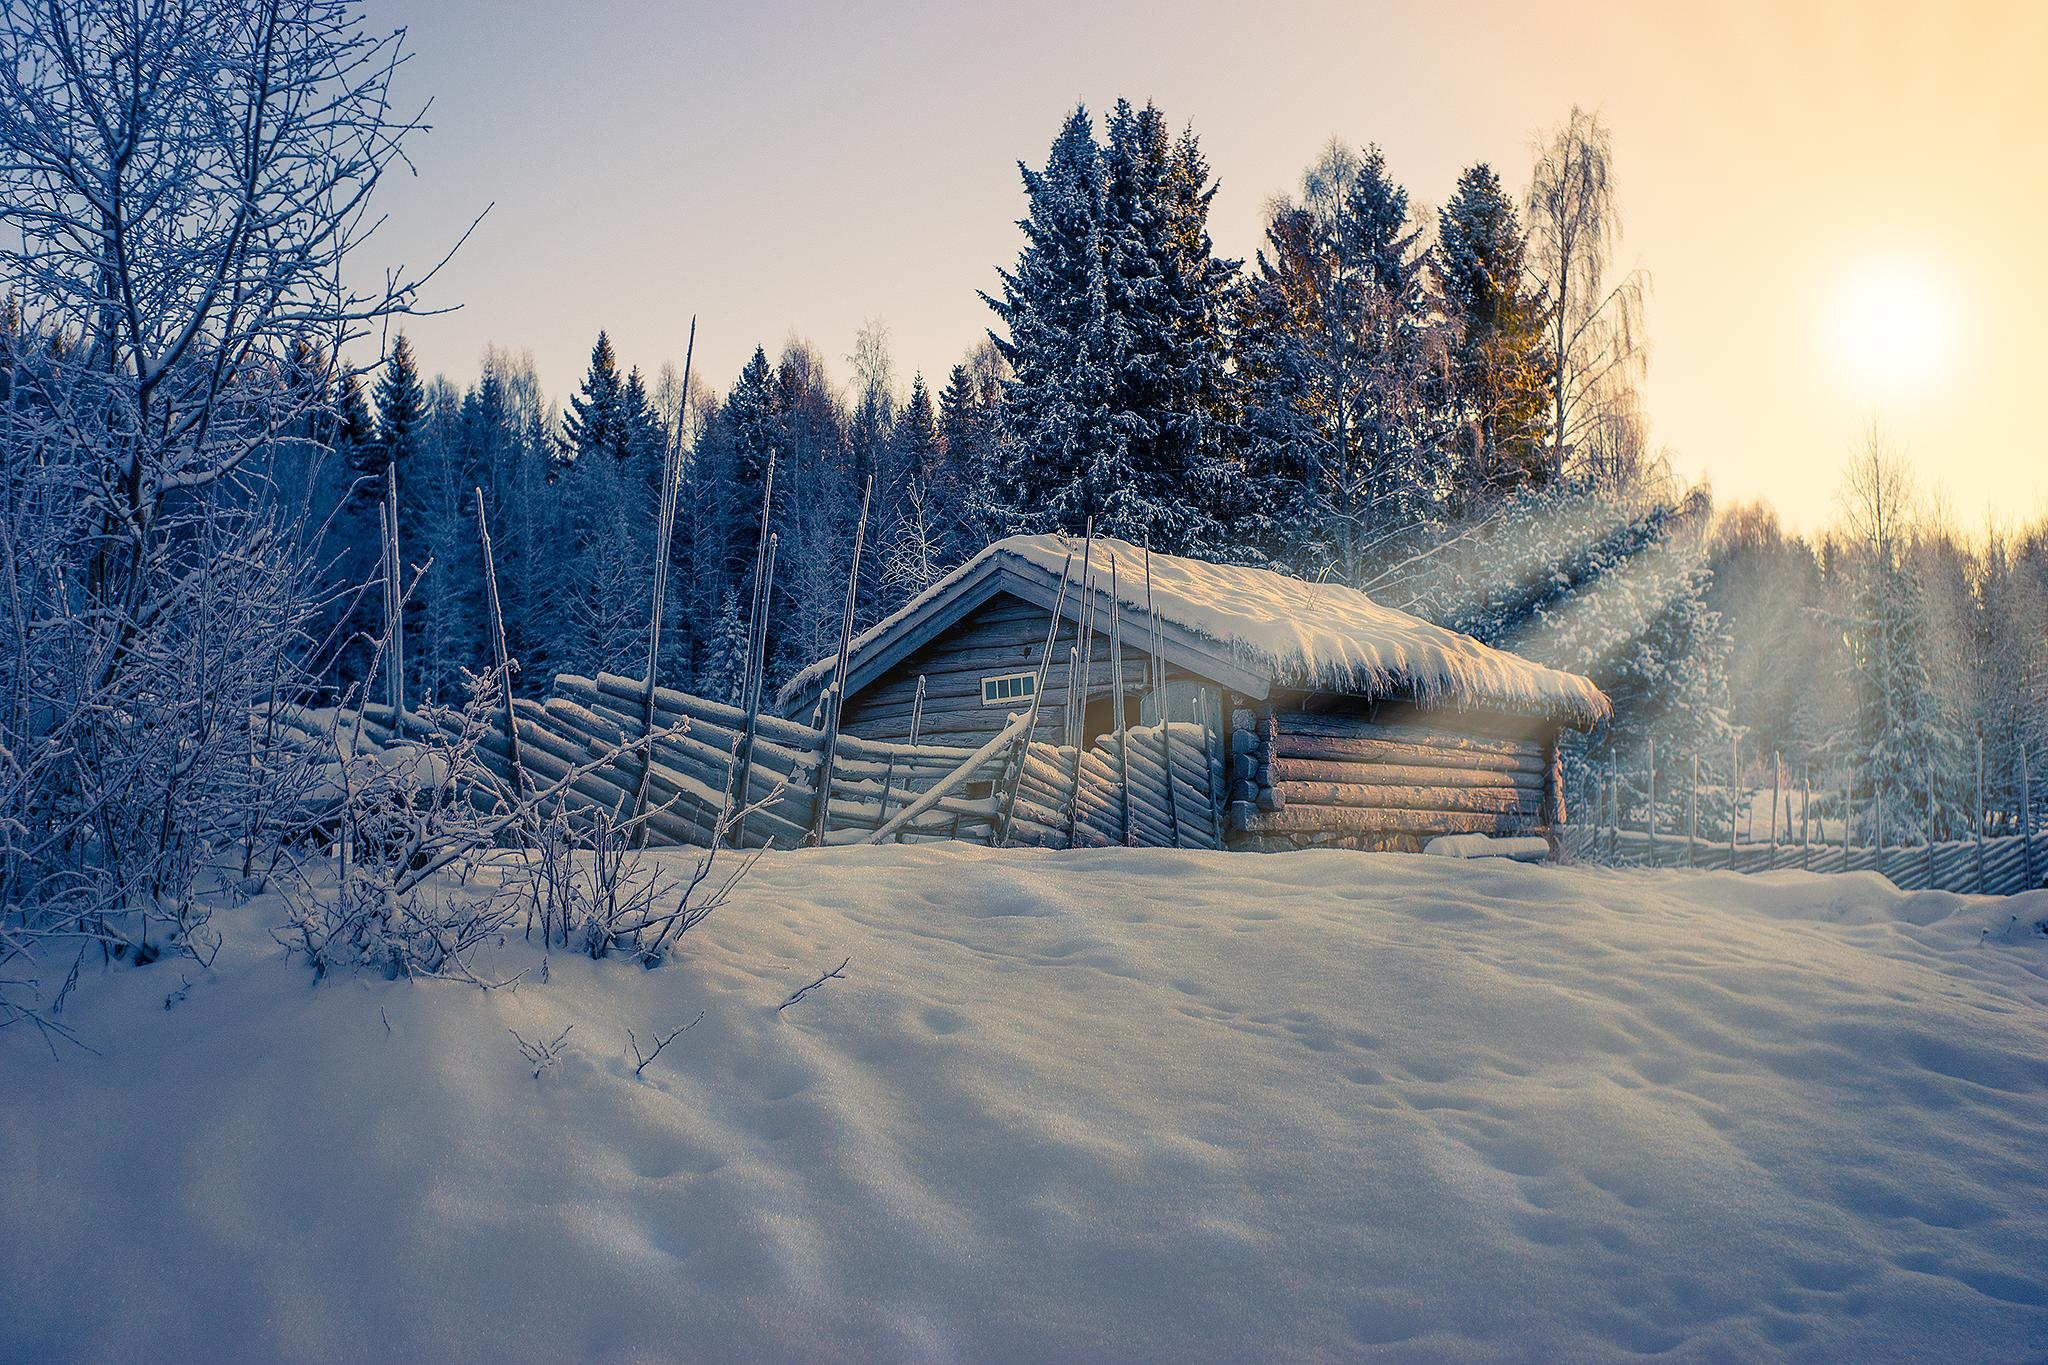 The Cabin by Nordentro